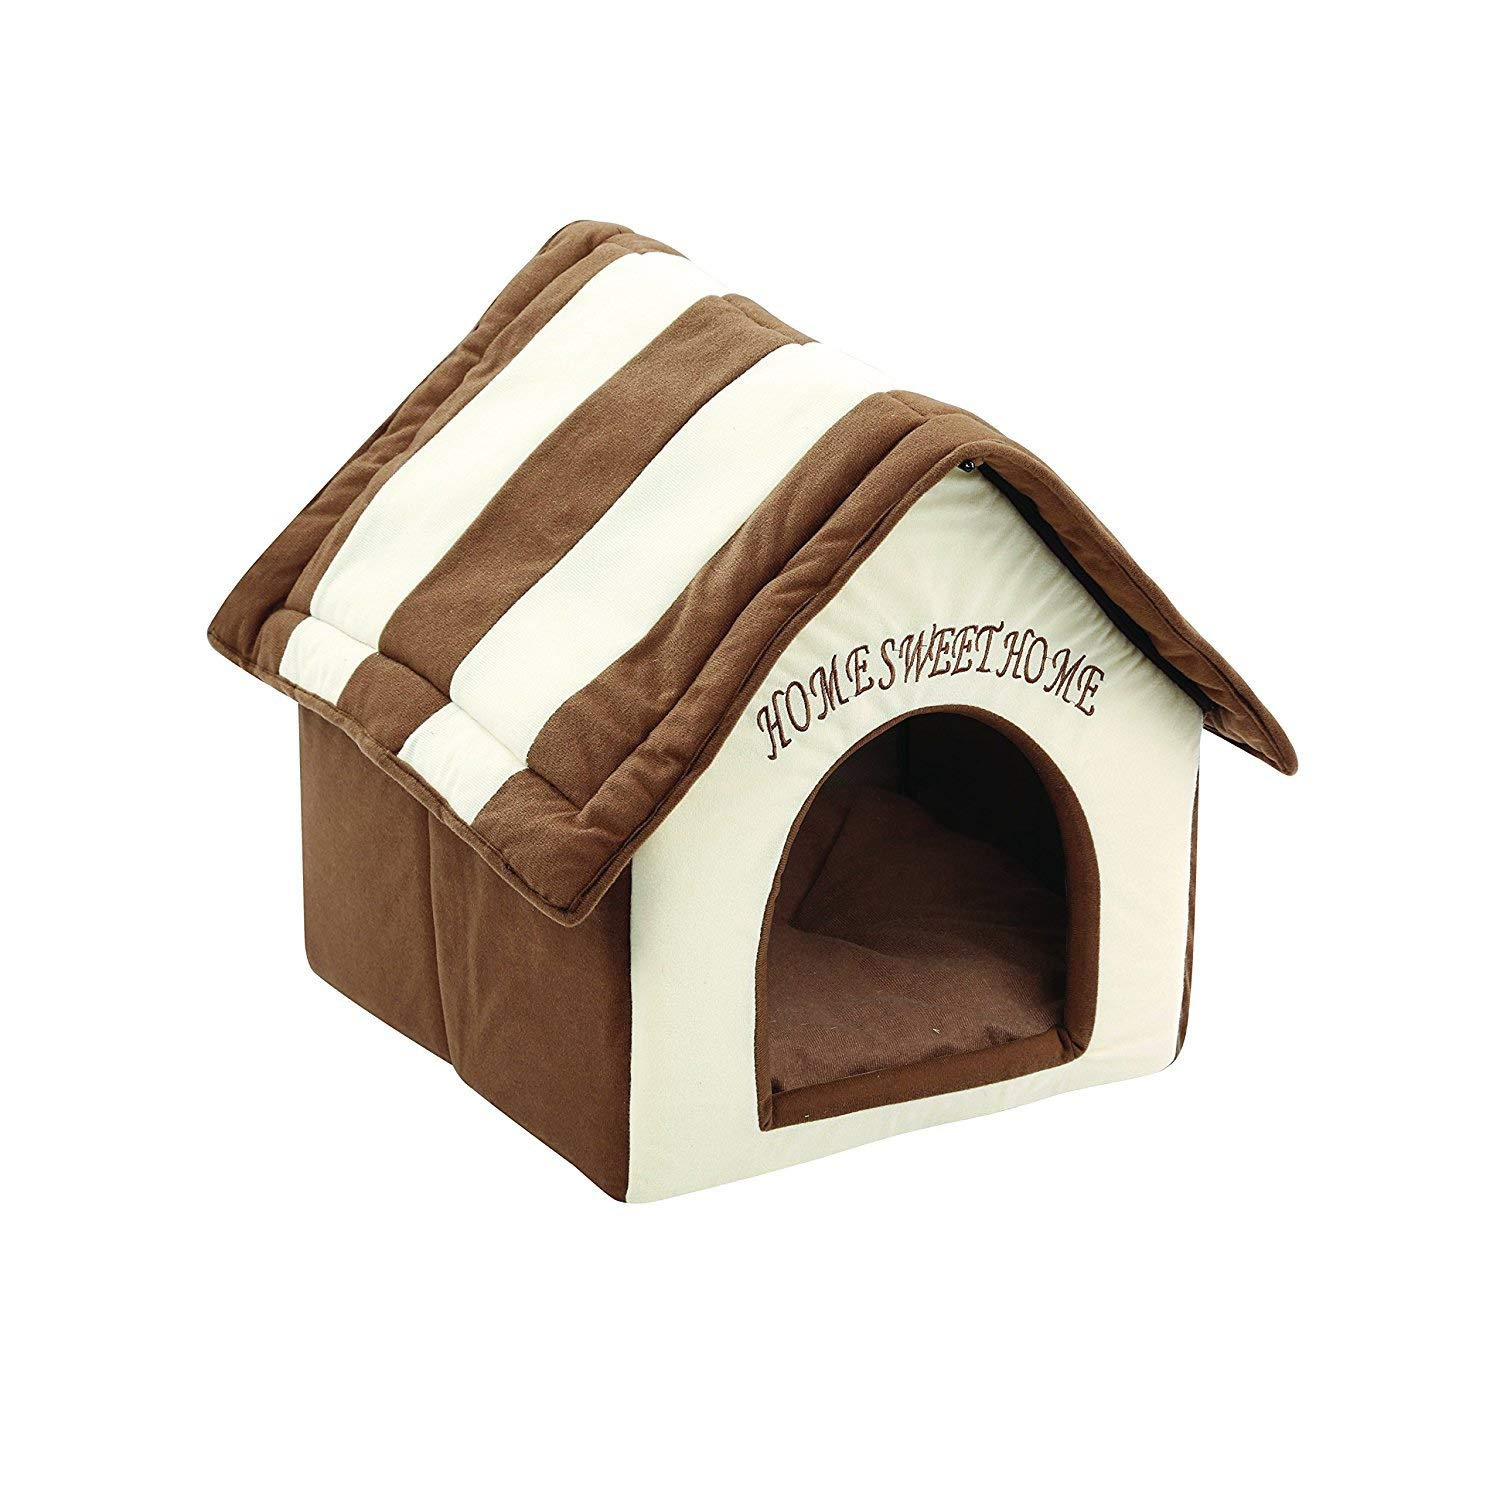 Jlxl Indoor Doghouse, Fashion Winter Pet Products Dog Mattress Soft Warm Cozy Cat Room Kennel Bed Doghouse